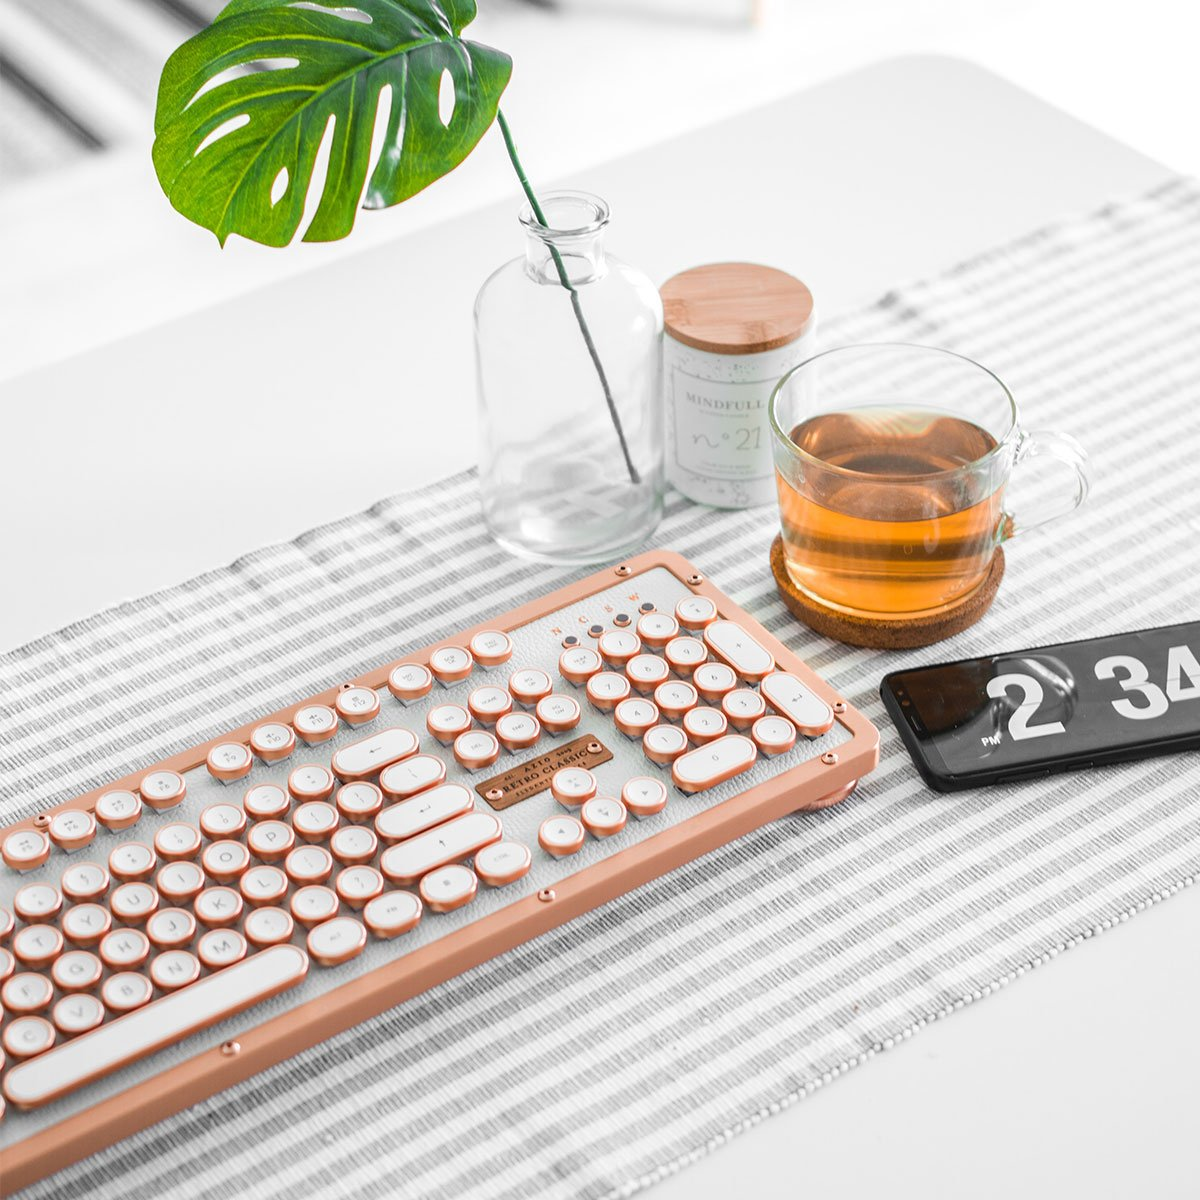 Bluetooth Retro Classic Mechanical Keyboard (EL WOOD / POSH)